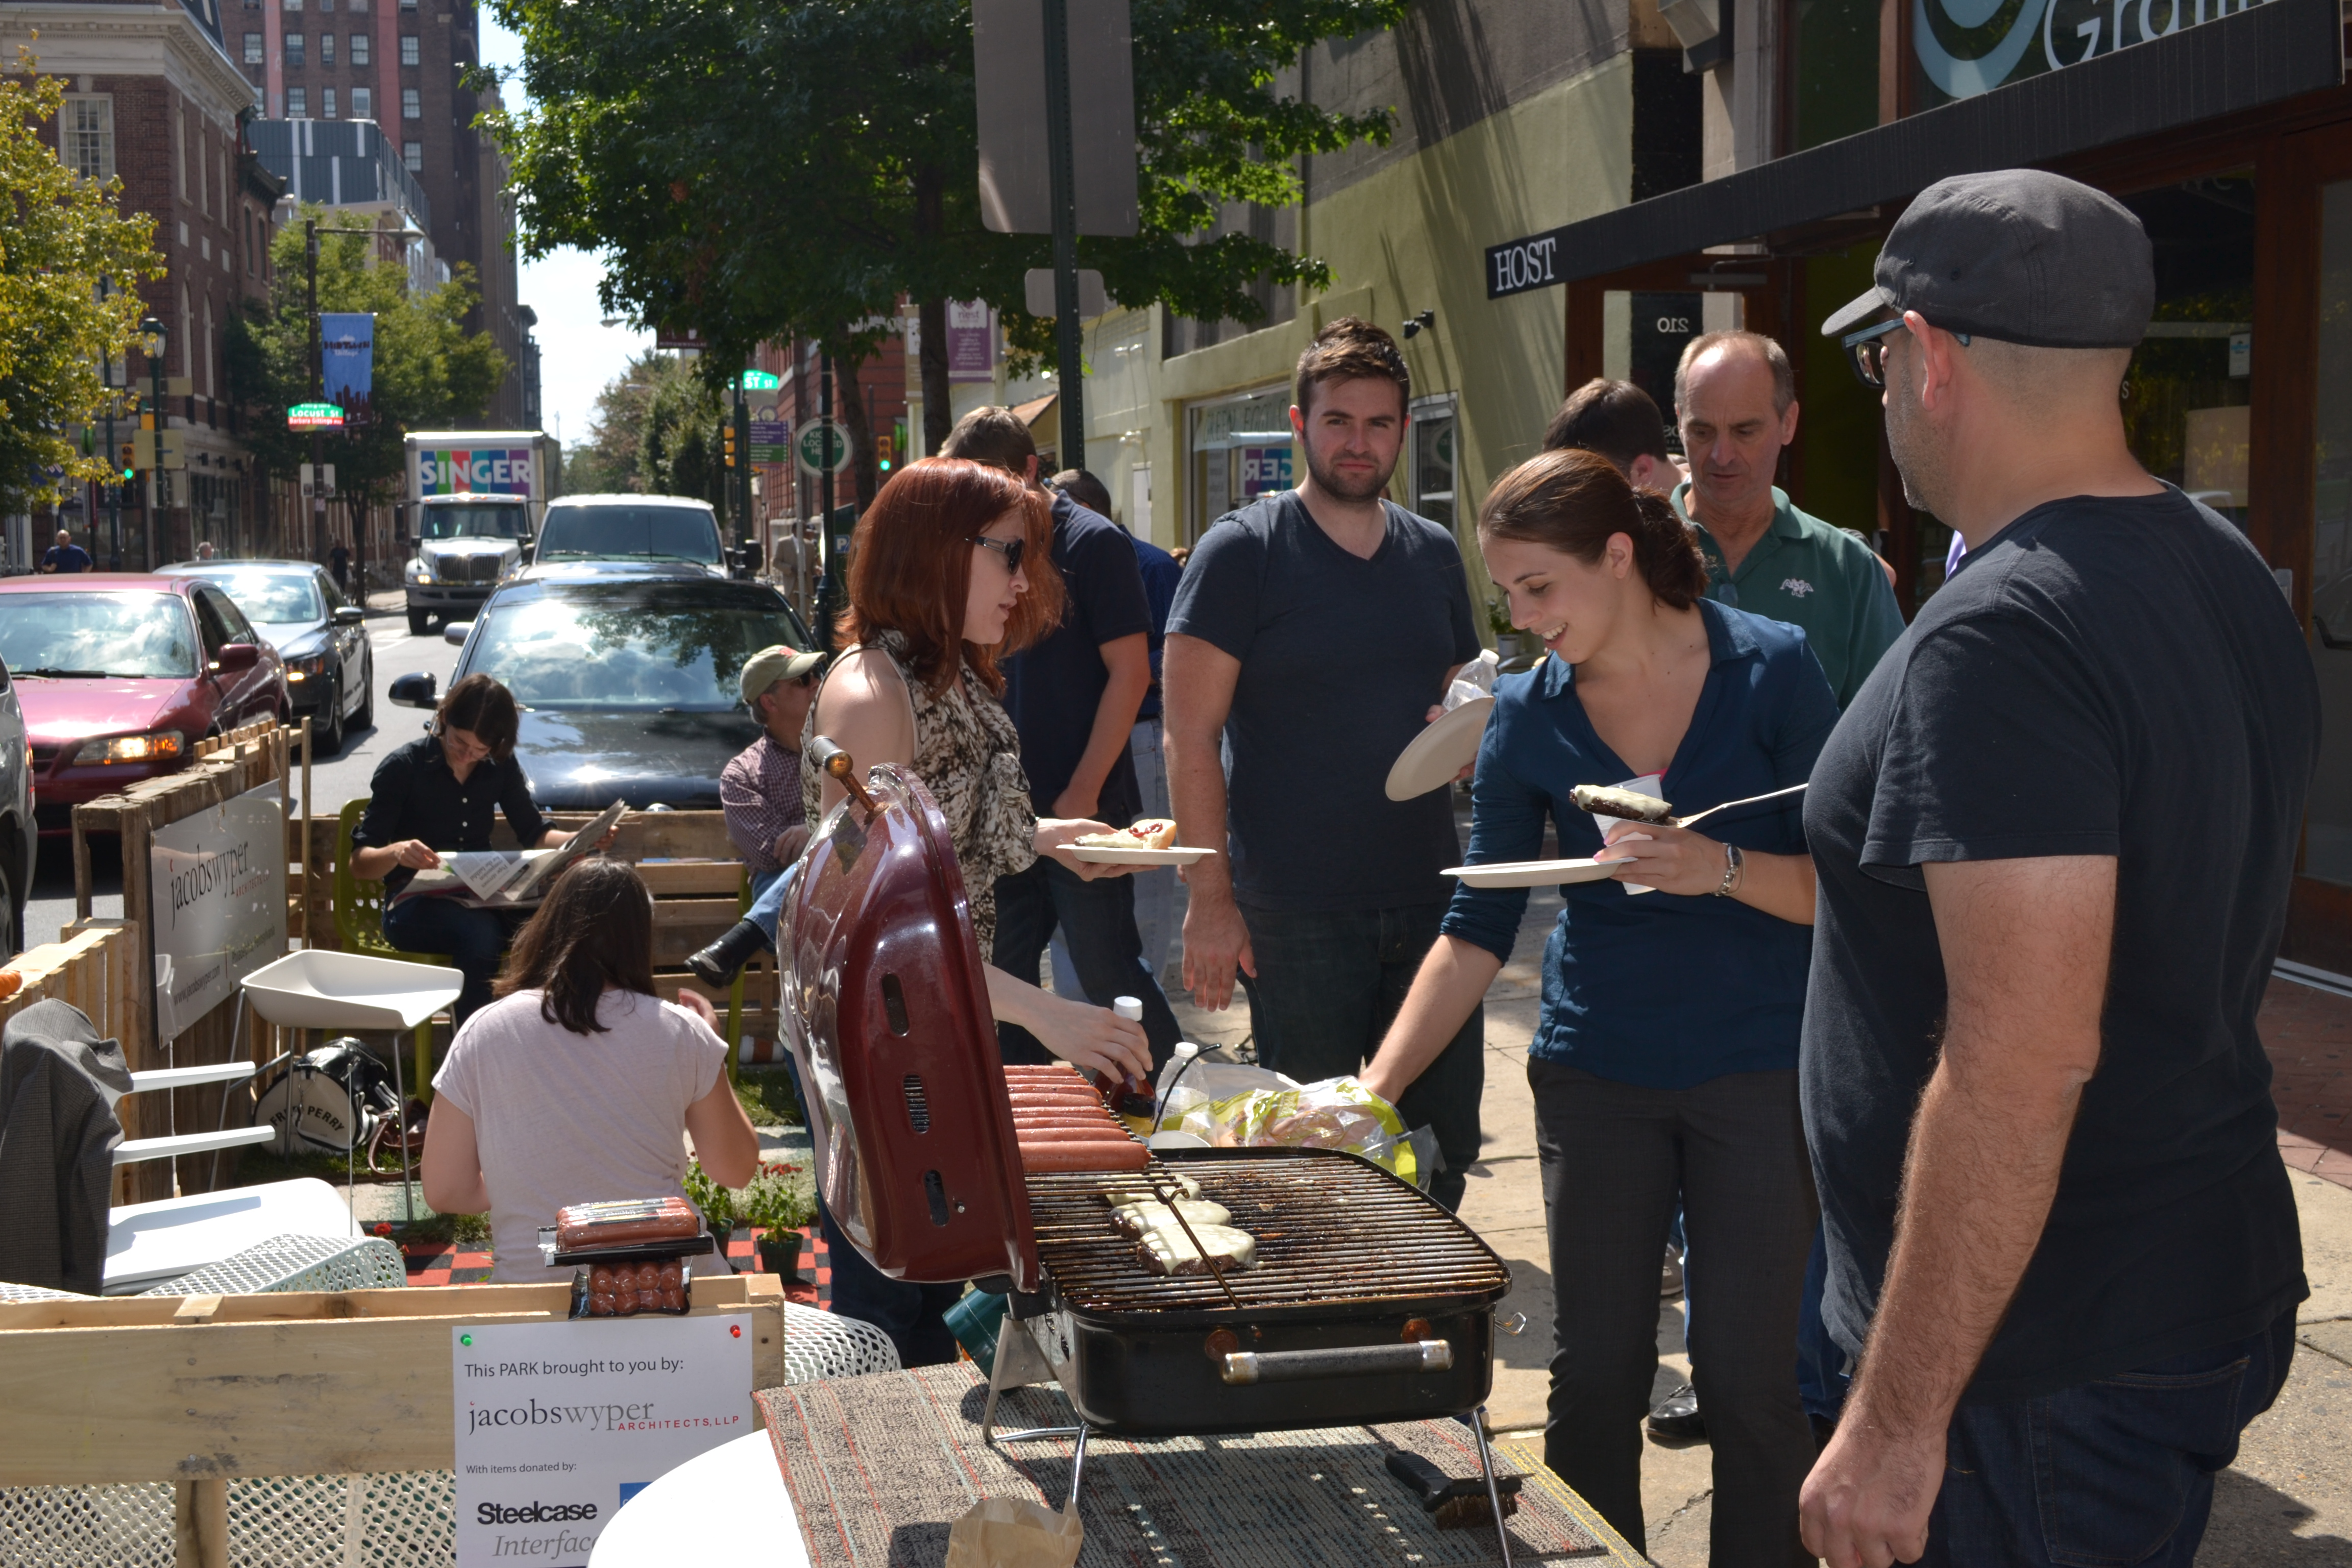 Park(ing) Day: Jacobs/Wyper Architects